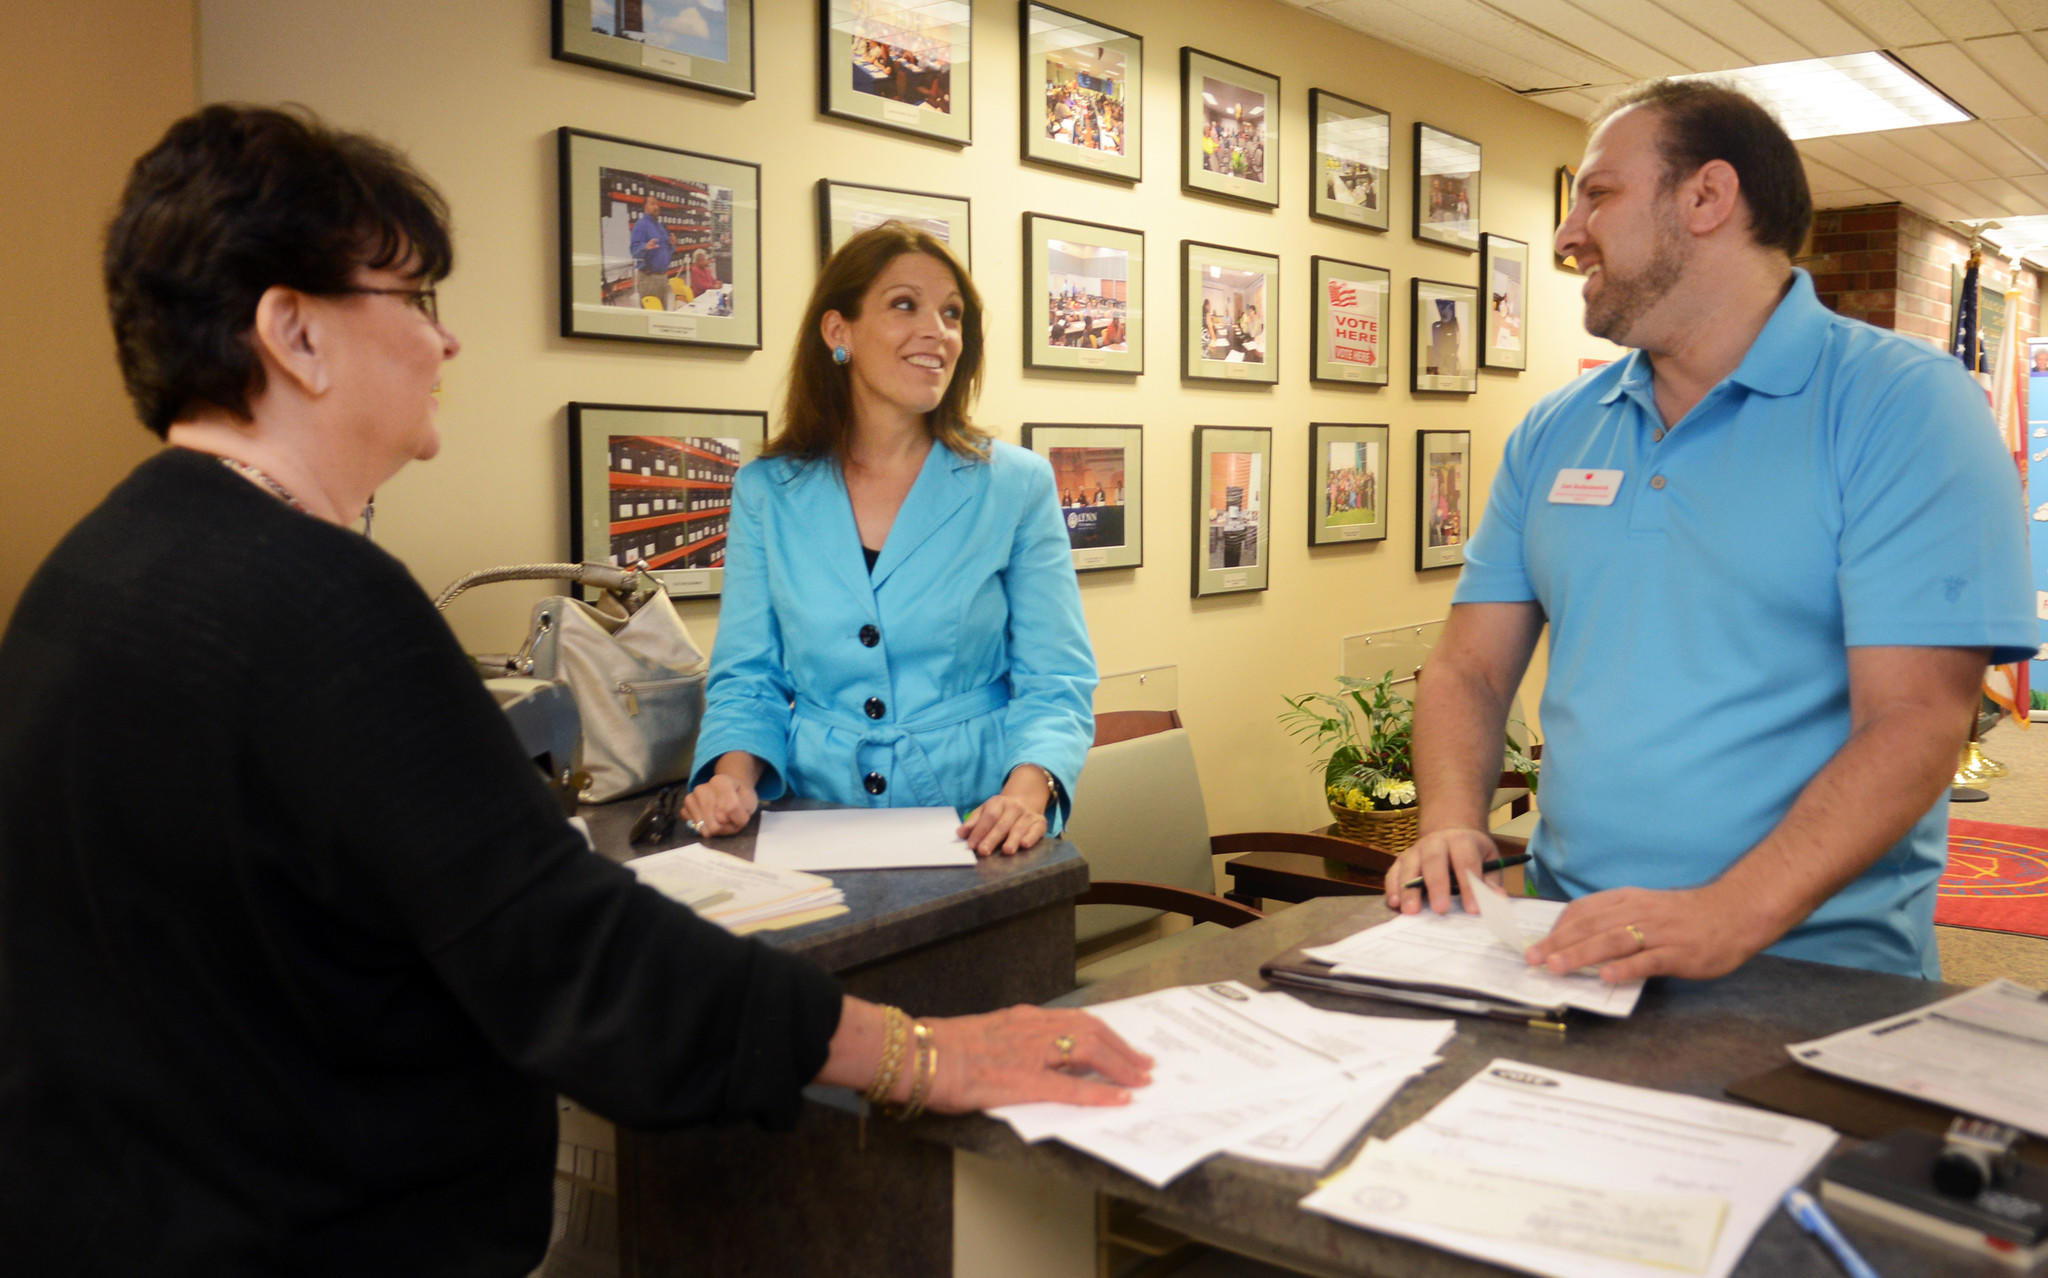 Supervisor of Elections Office Public Services Director (left) Mary Cooney takes the paperwork from (middle) Gineen M. Bresso, running for Broward Soil & Water Conservation District 4, and (right) Sam Budyszewick, running for Broward County School Board District 3, so they can qualify to appear on the ballot Friday less hour before the noon Friday deadline in Fort Lauderdale. Photo by Taimy Alvarez, Sun Sentinel